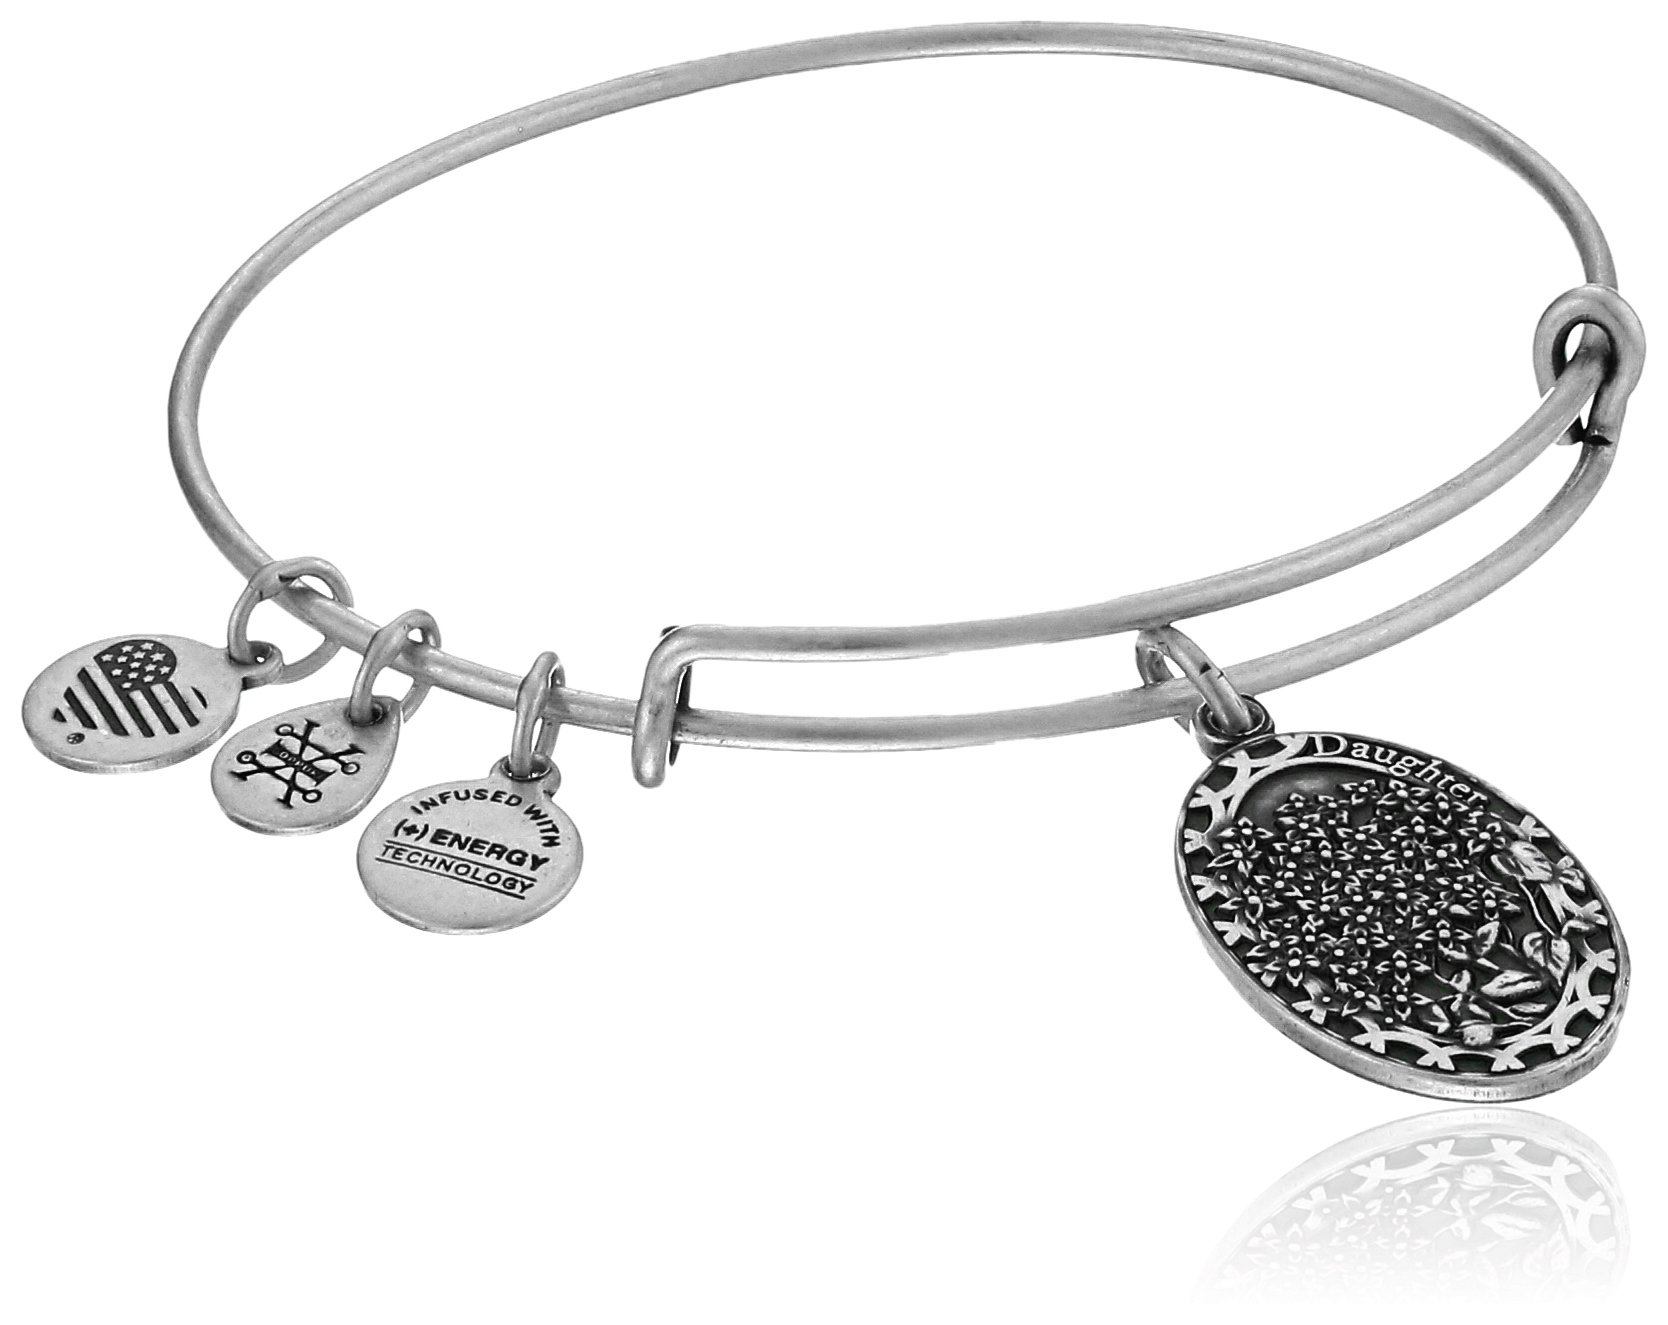 ltd grace products zebra butler charm eds awareness syndrome anklet rose bracelet or plated danlos and with gold ehlers